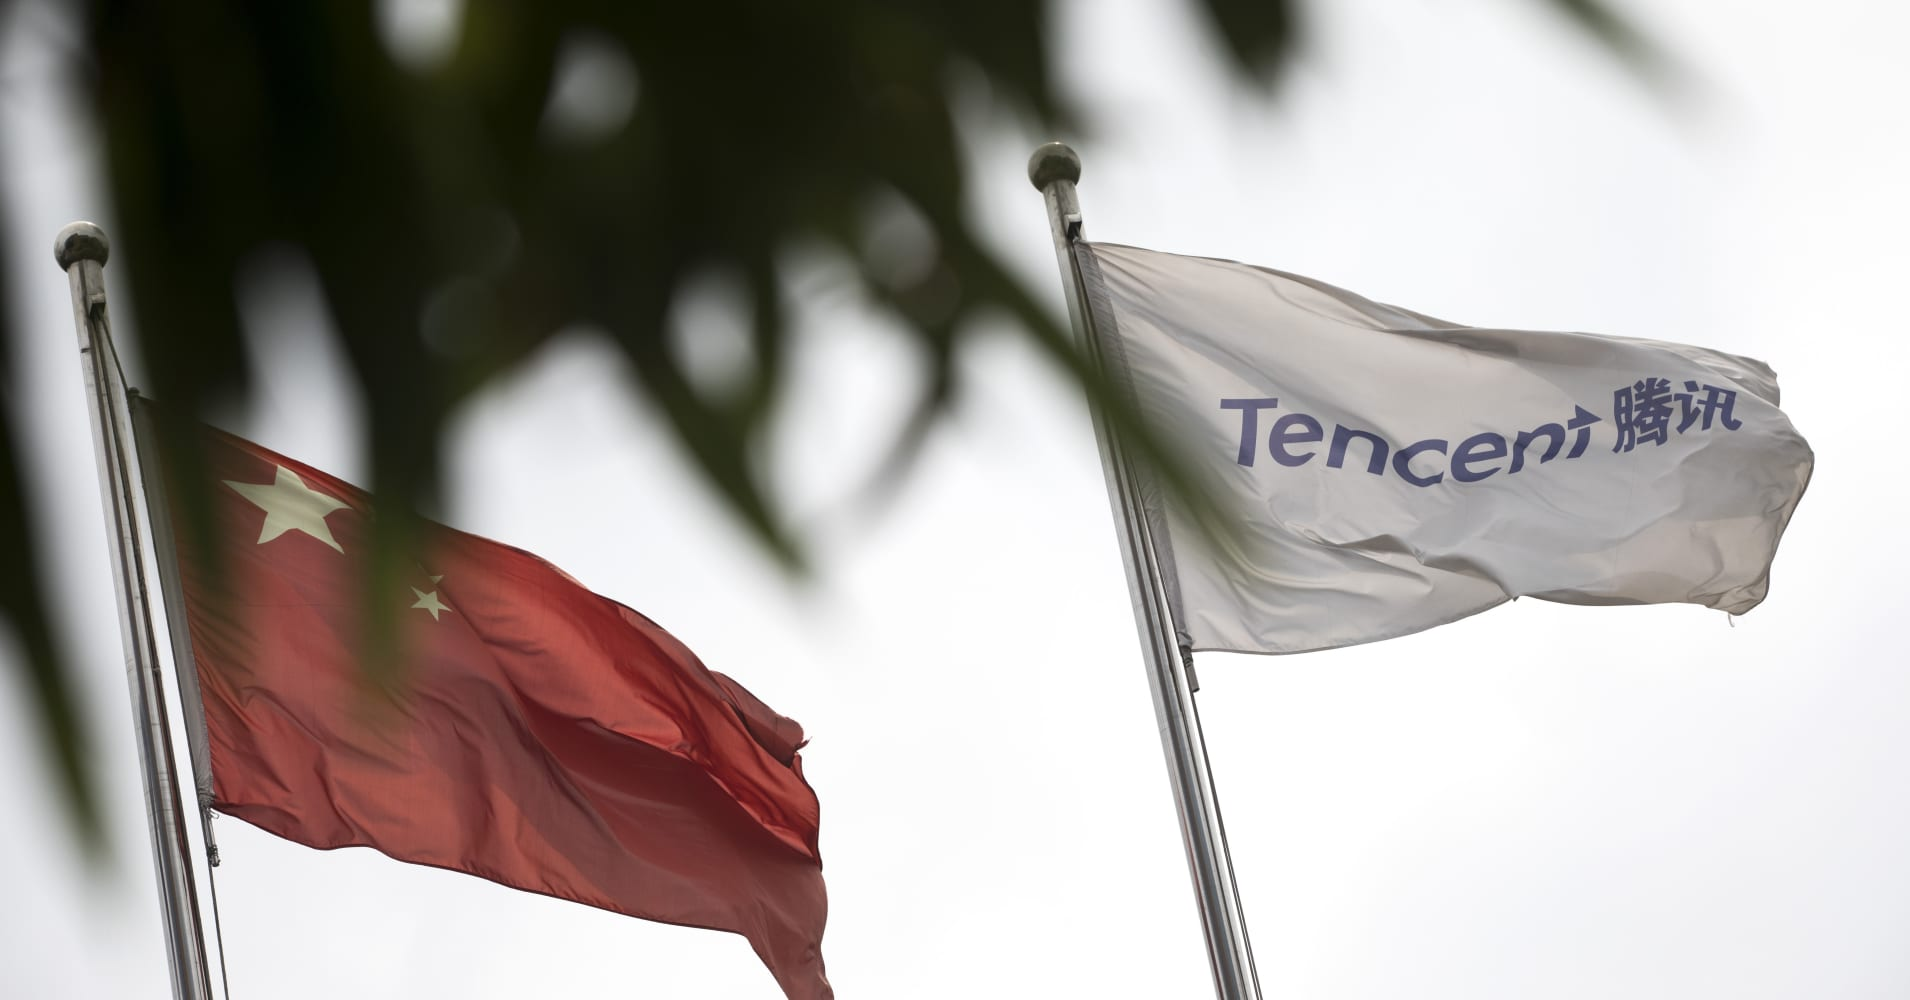 Tencent reportedly partners local coffee start-up to take on China's coffee market